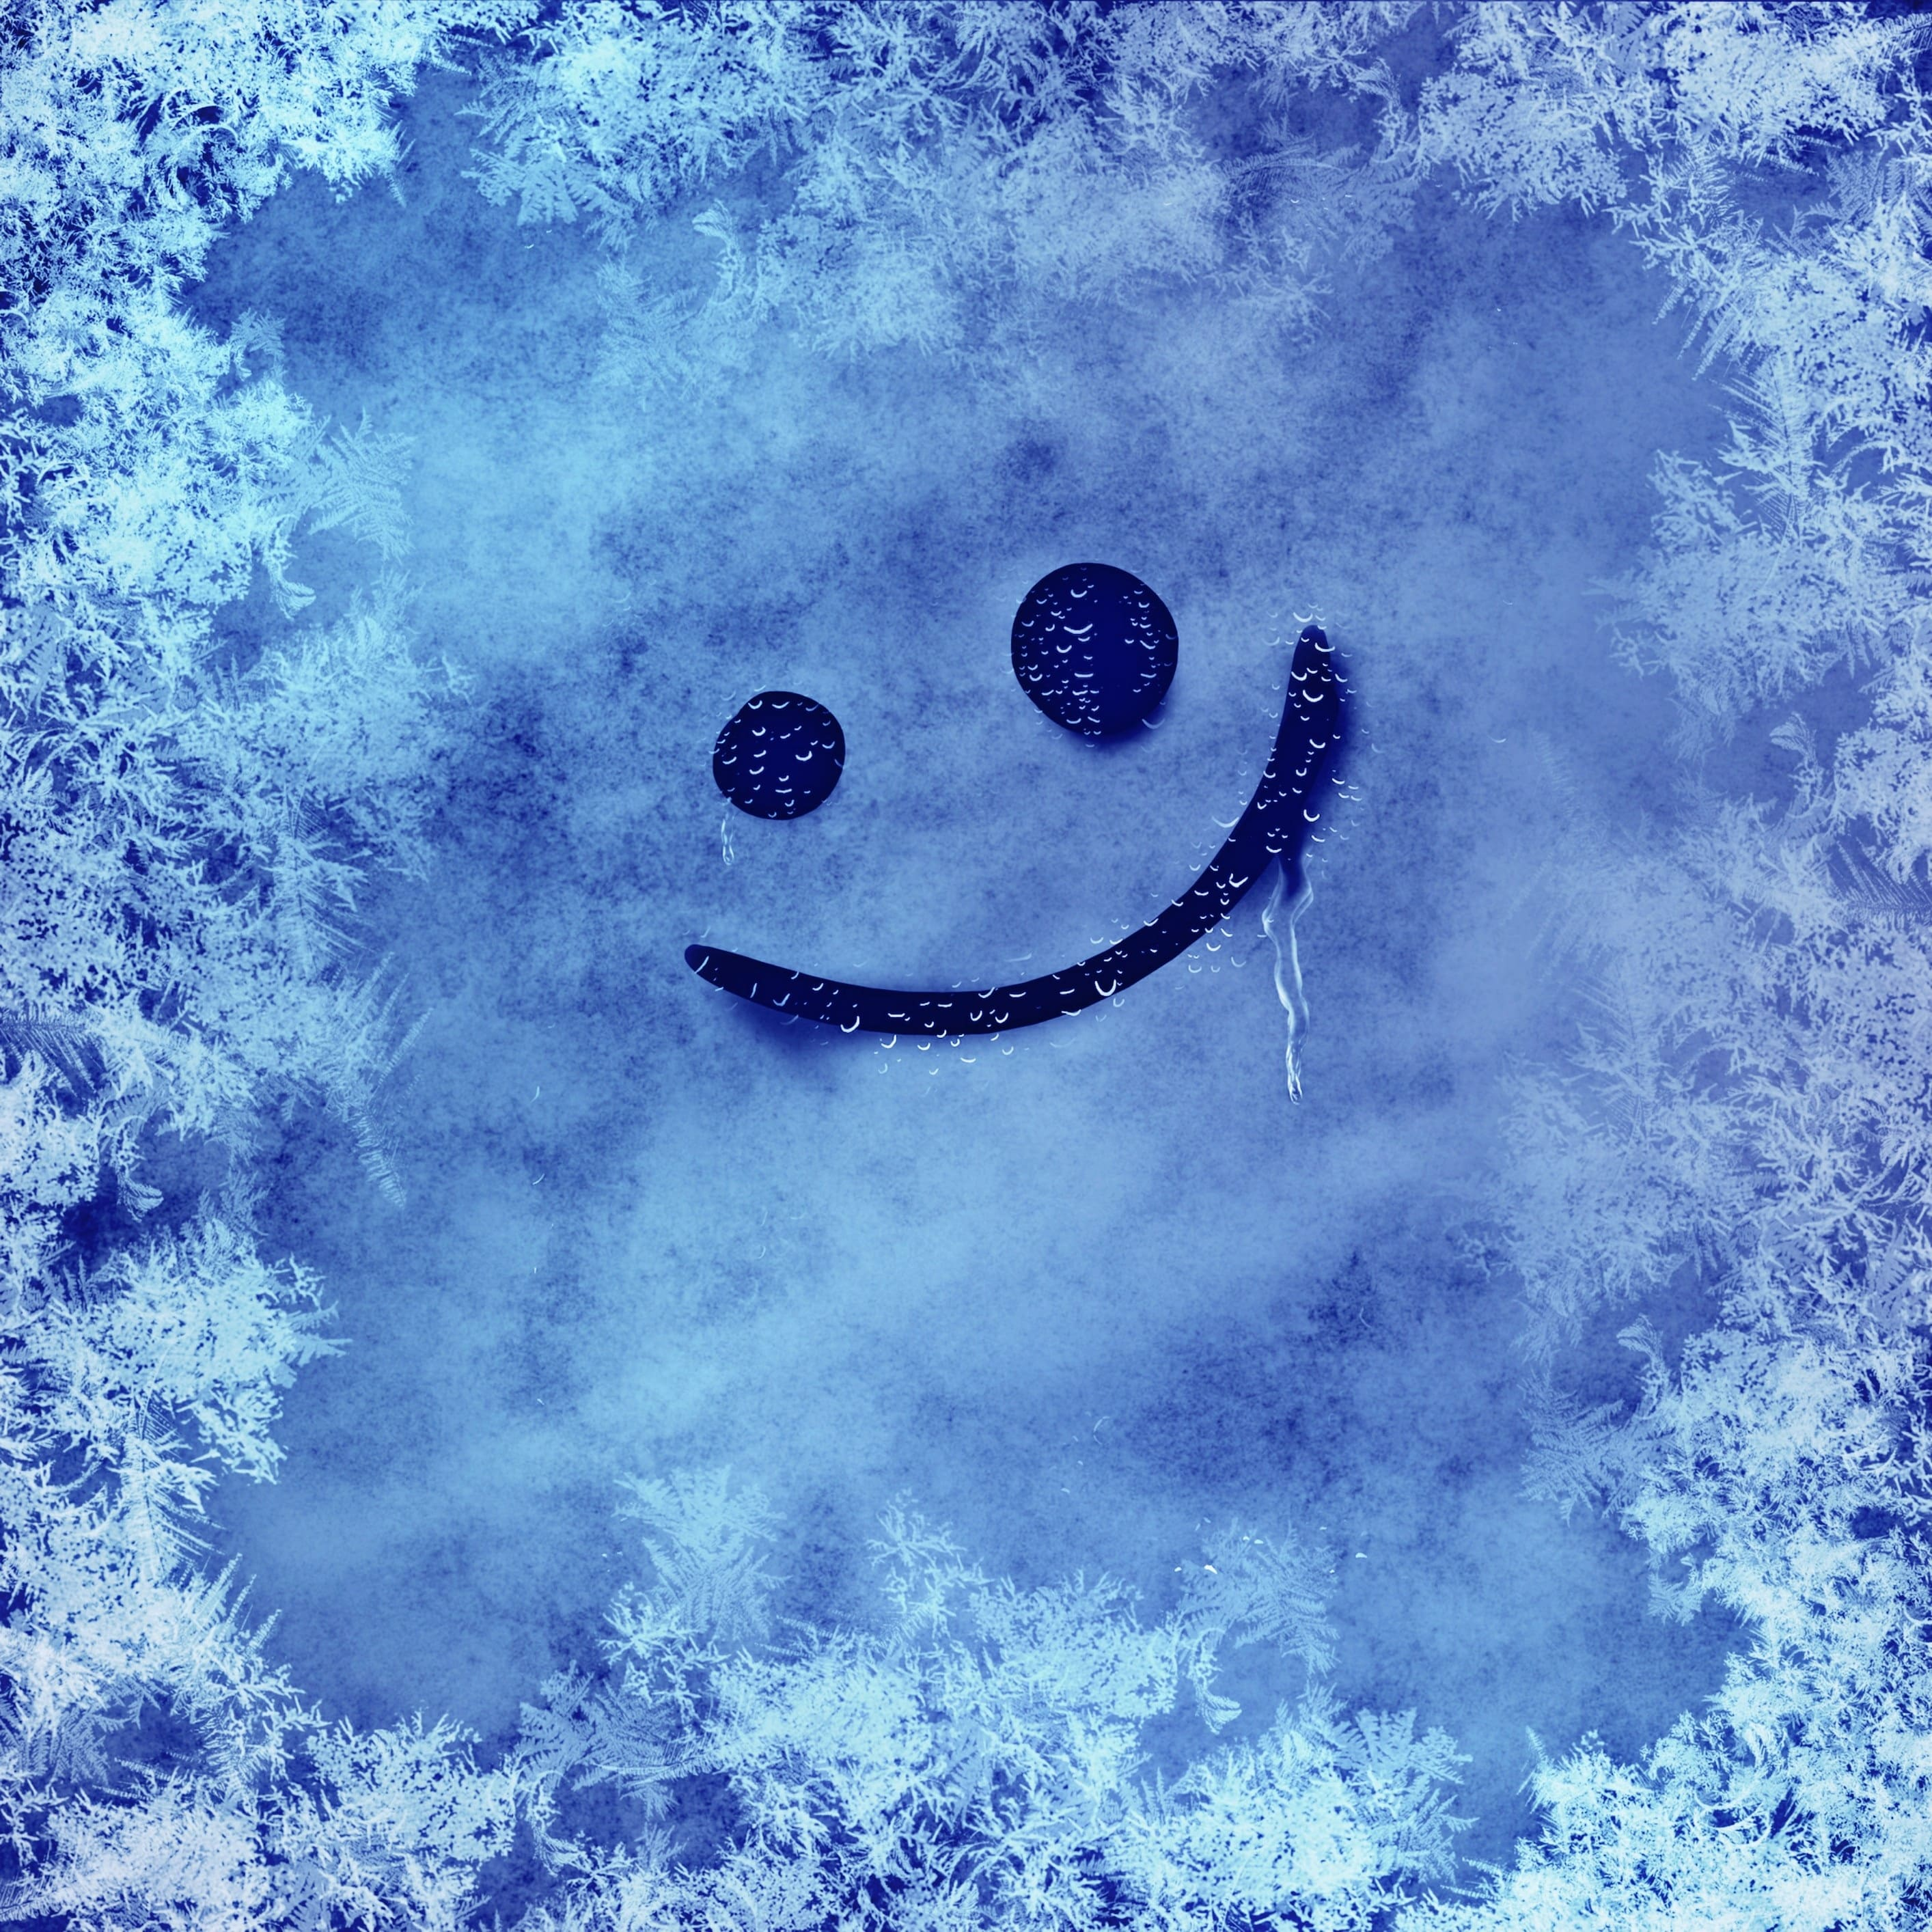 2828x2828 Winter Hardest Smiley Frost Cold #3199 Wallpapers and Free ...